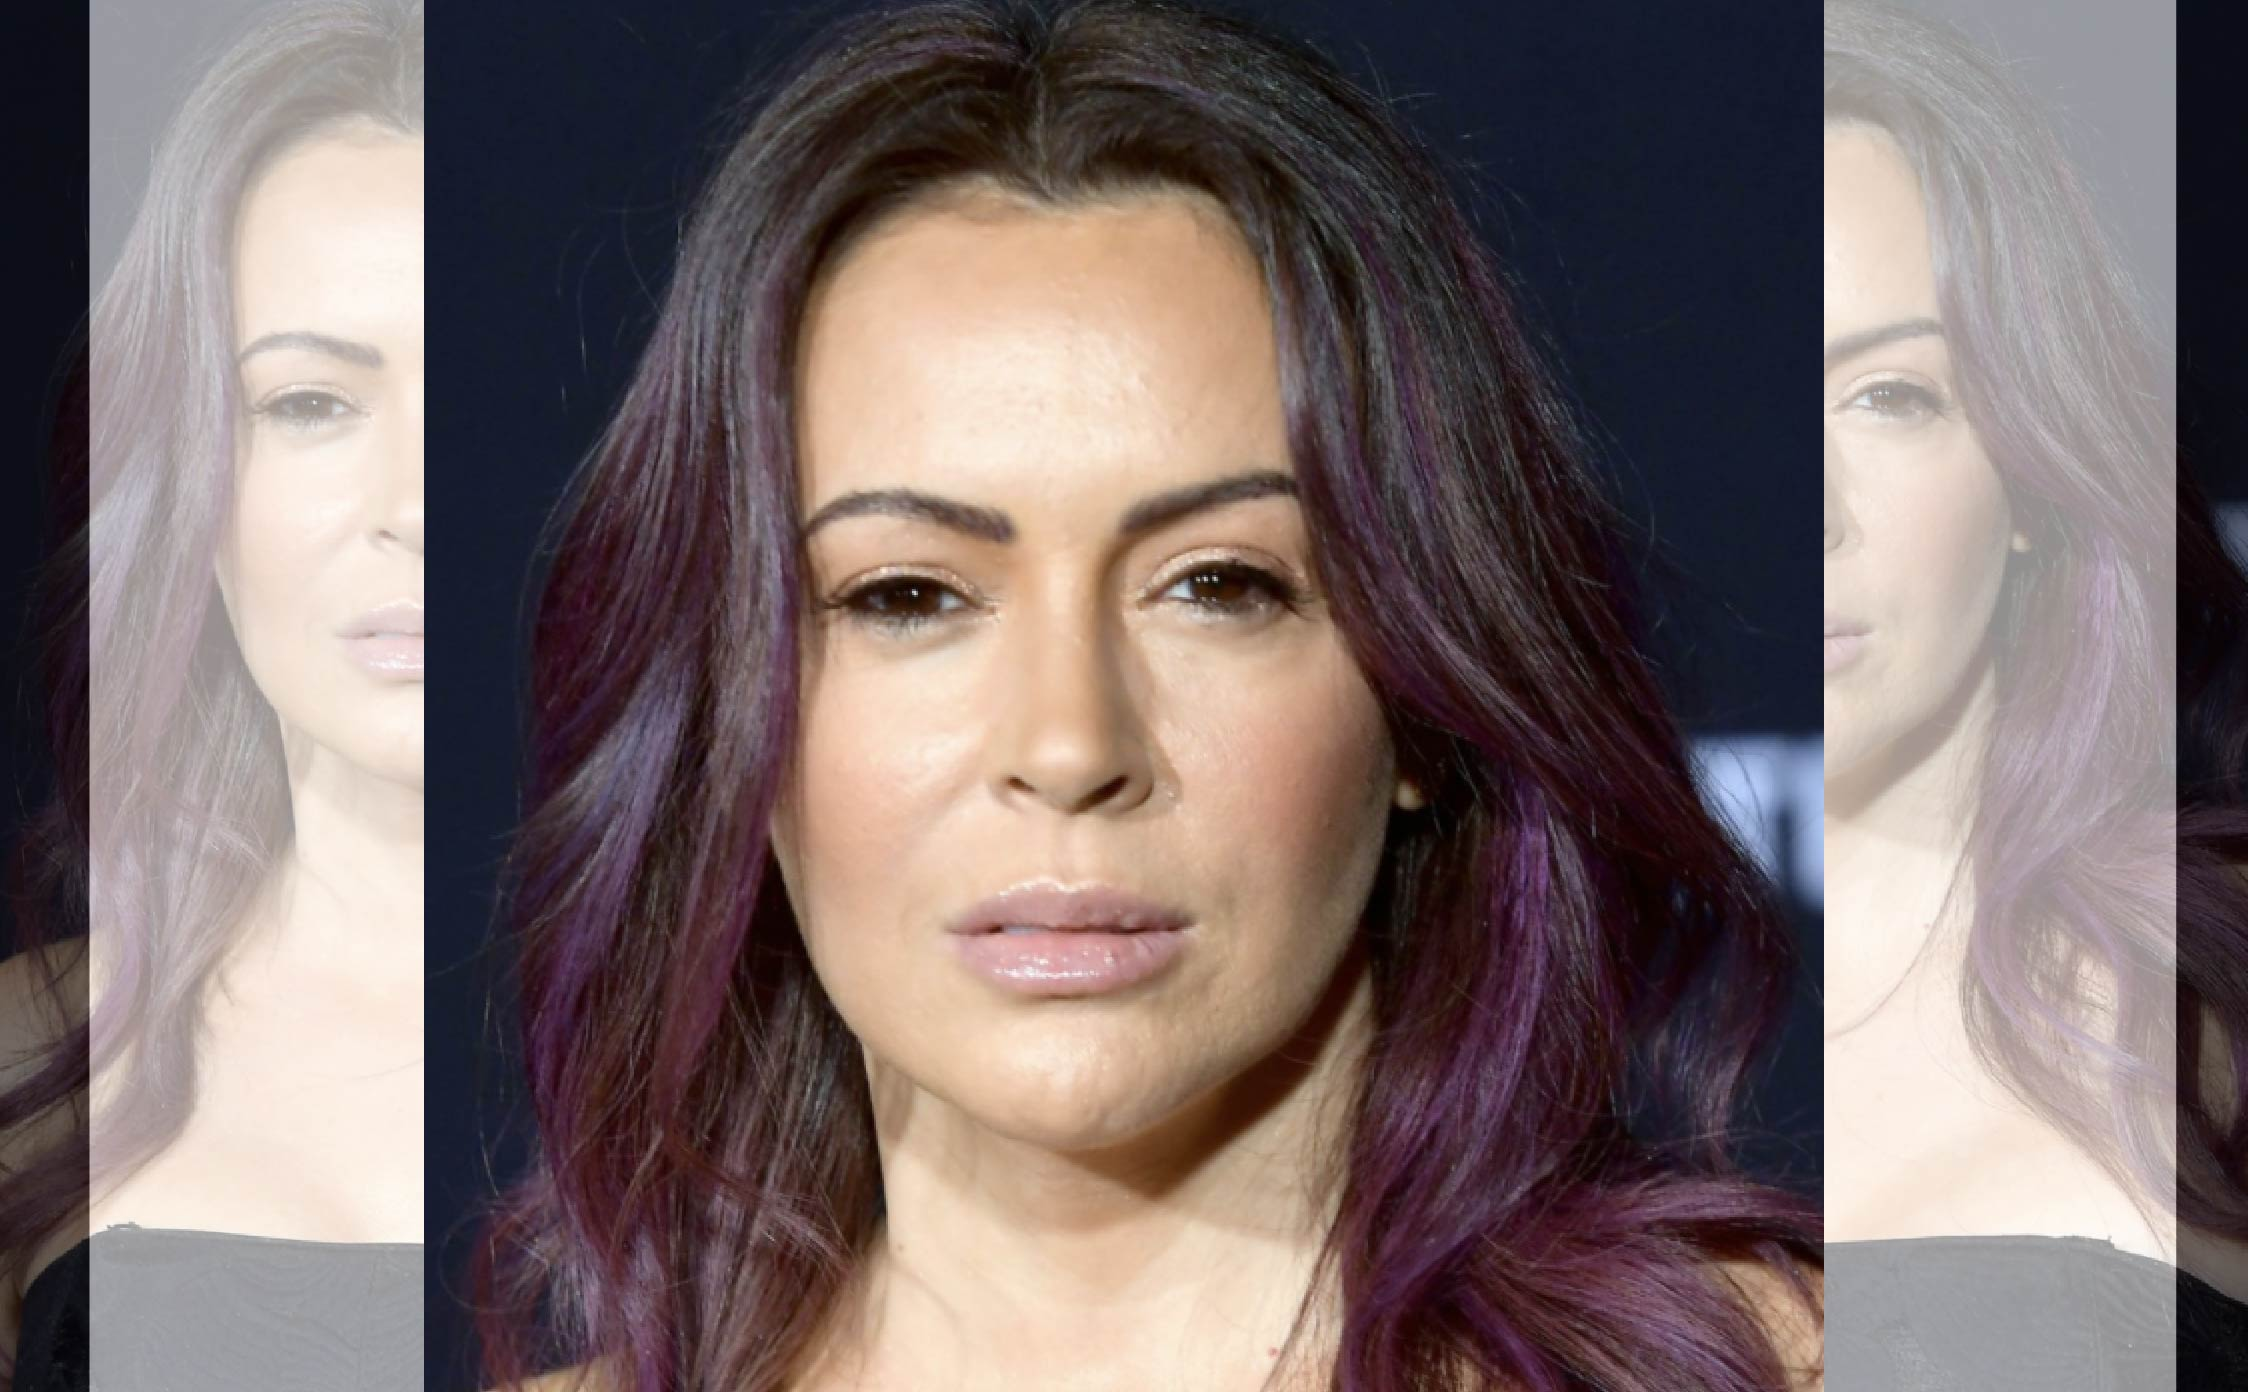 Alyssa Milano's New Desperate Instagram Post, Proves Dems Have Finally Hit Rock Bottom